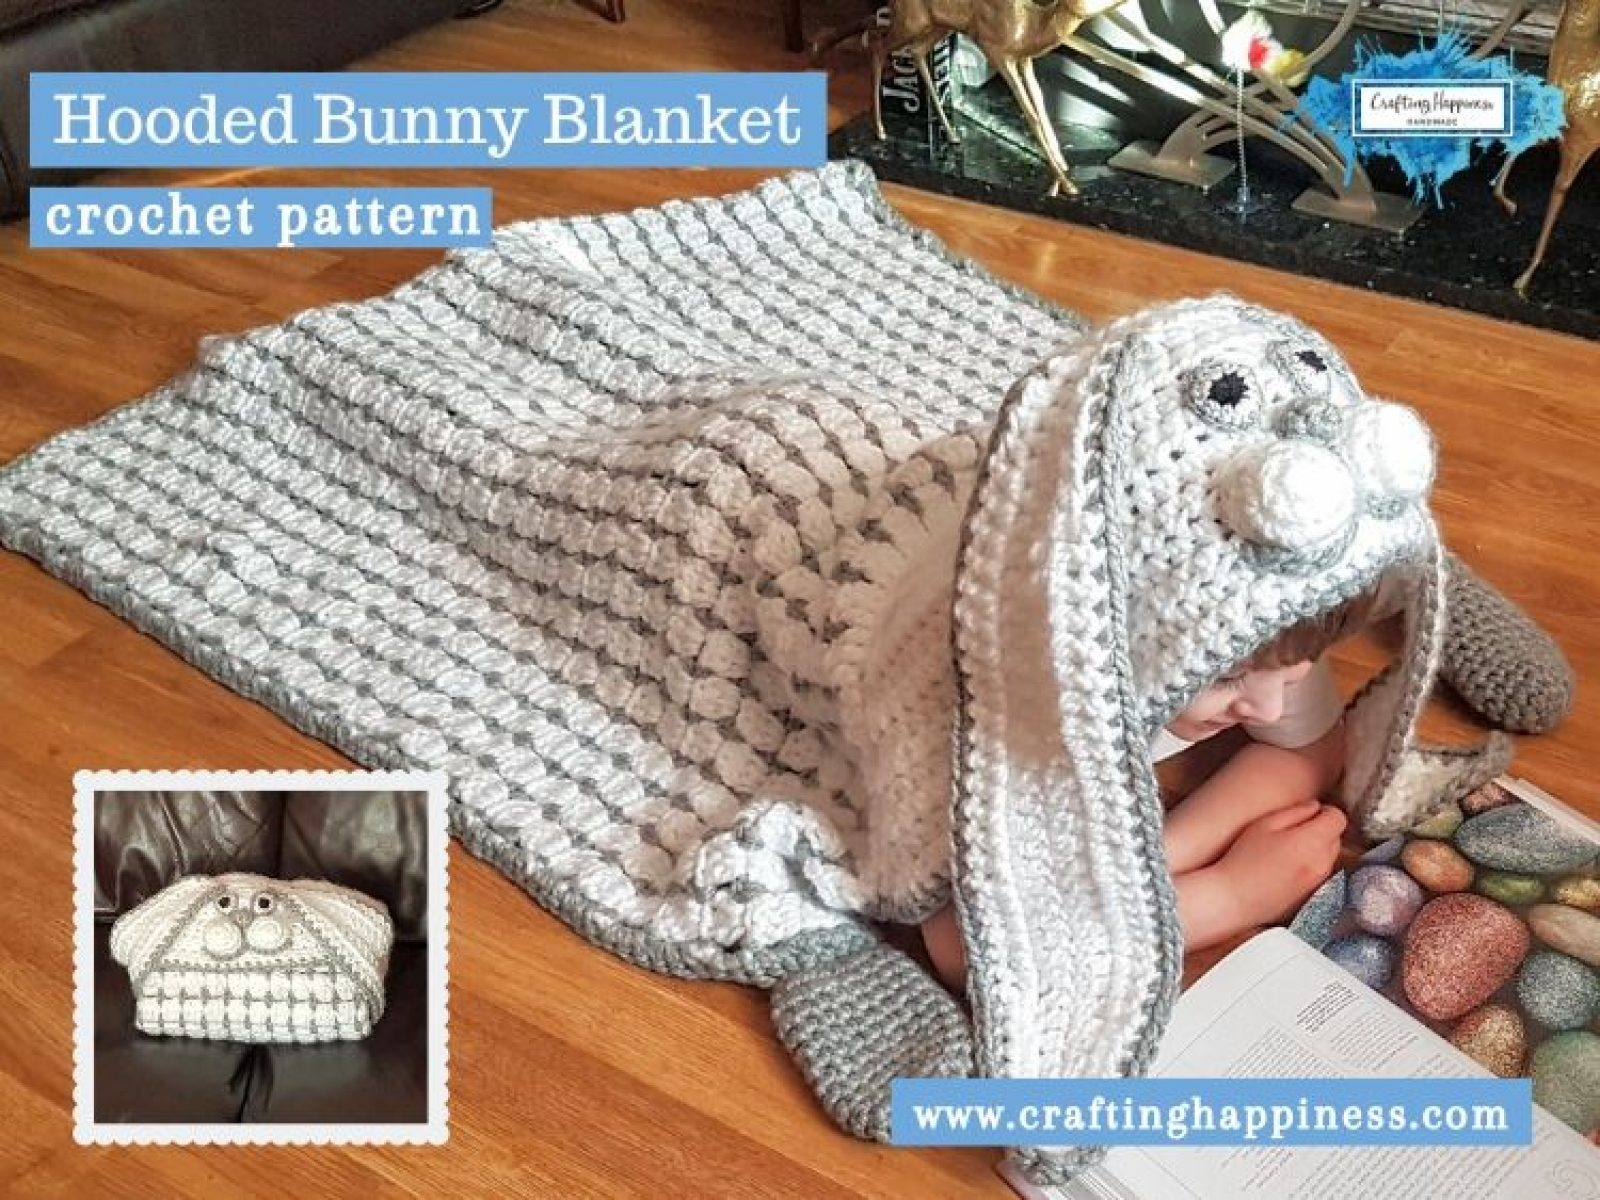 Hooded Bunny Blanket by Crafting Happiness FACEBOOK POSTER